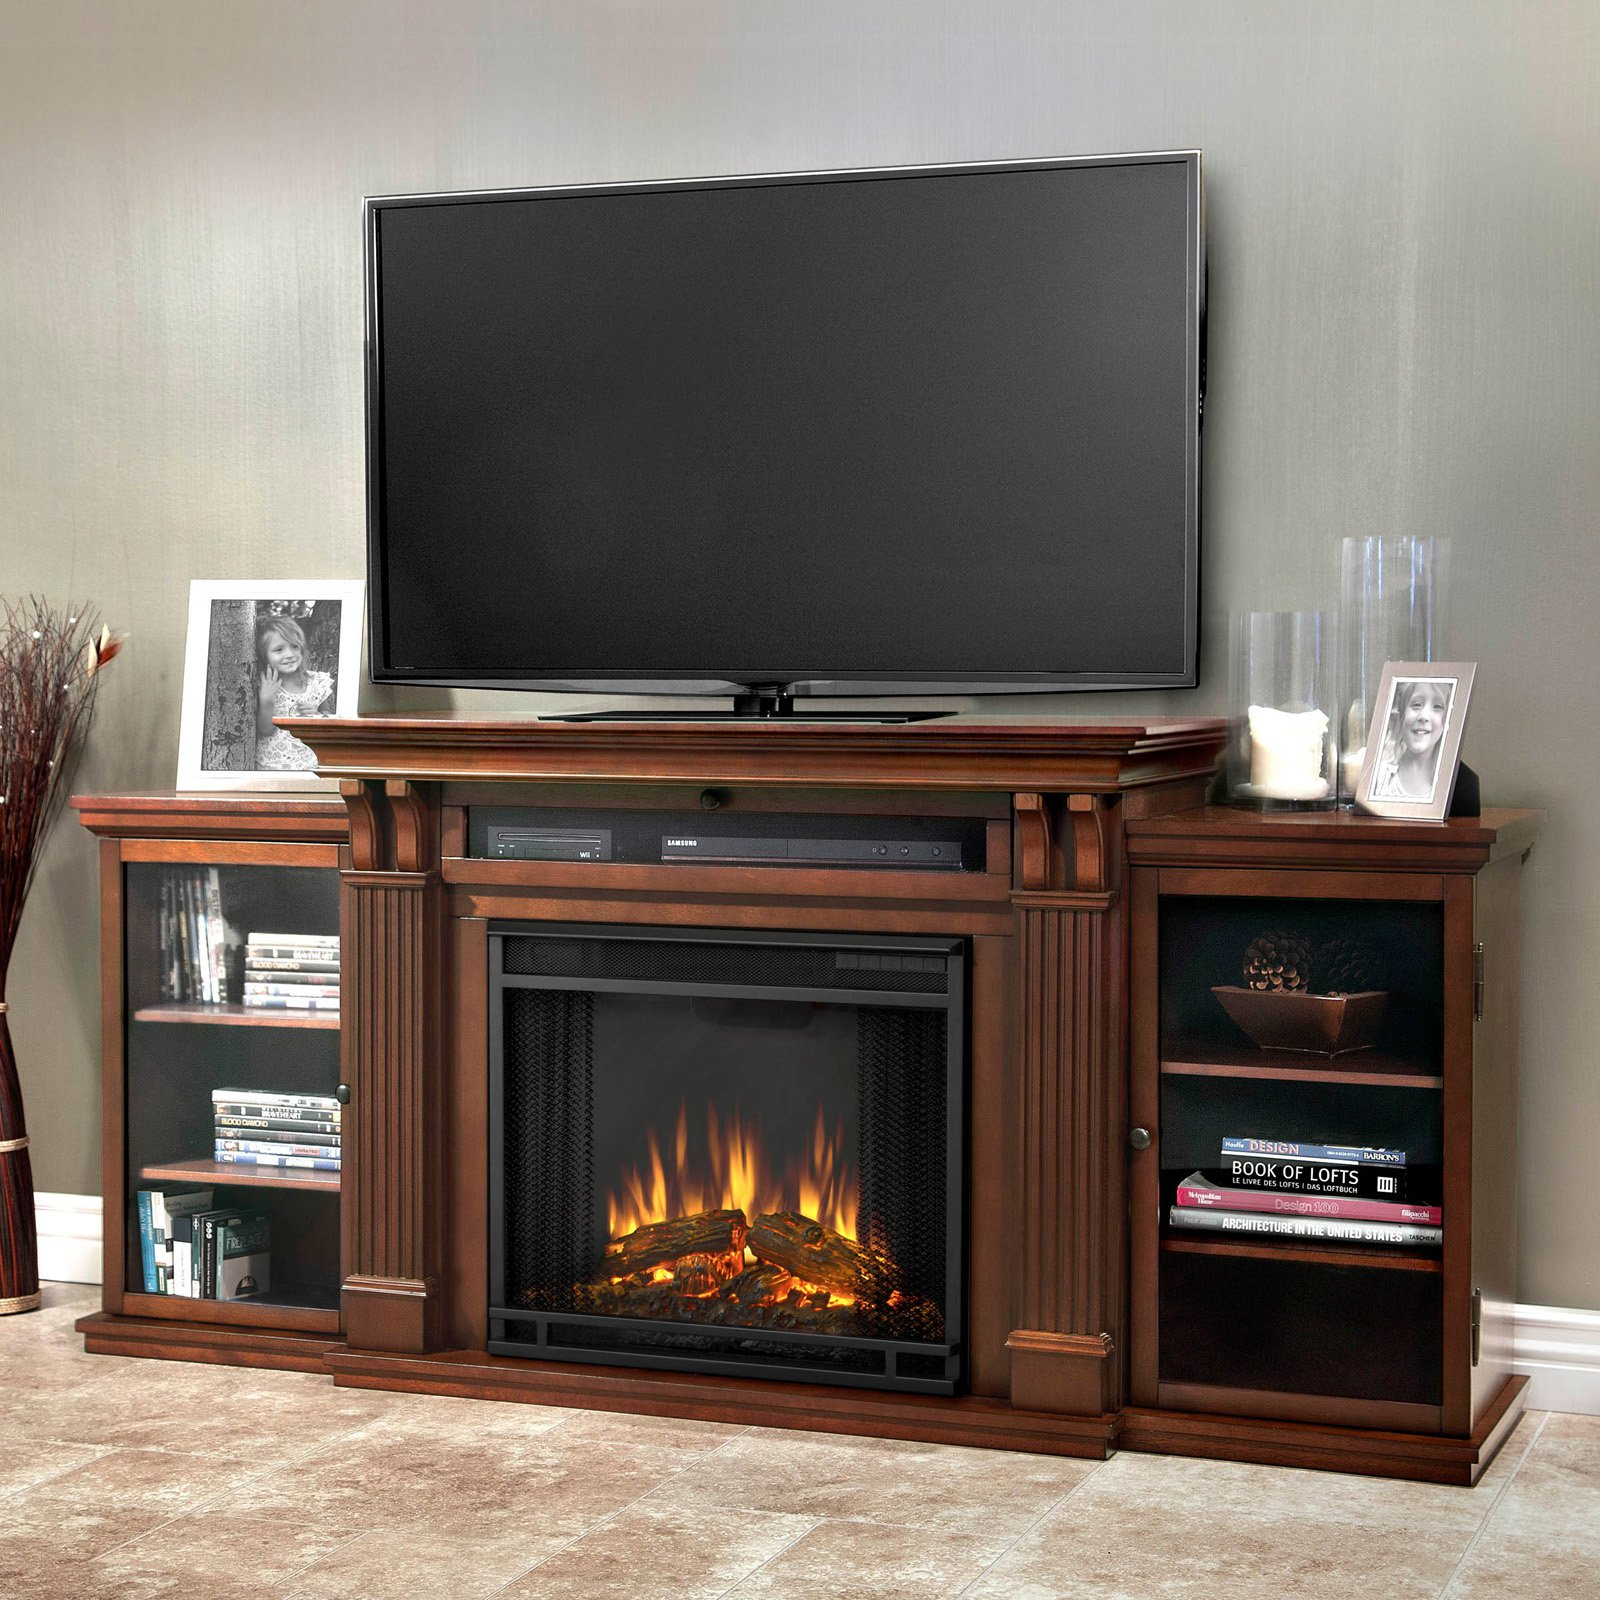 Real Flame Calie Entertainment Center Electric Fireplace - Dark Espresso